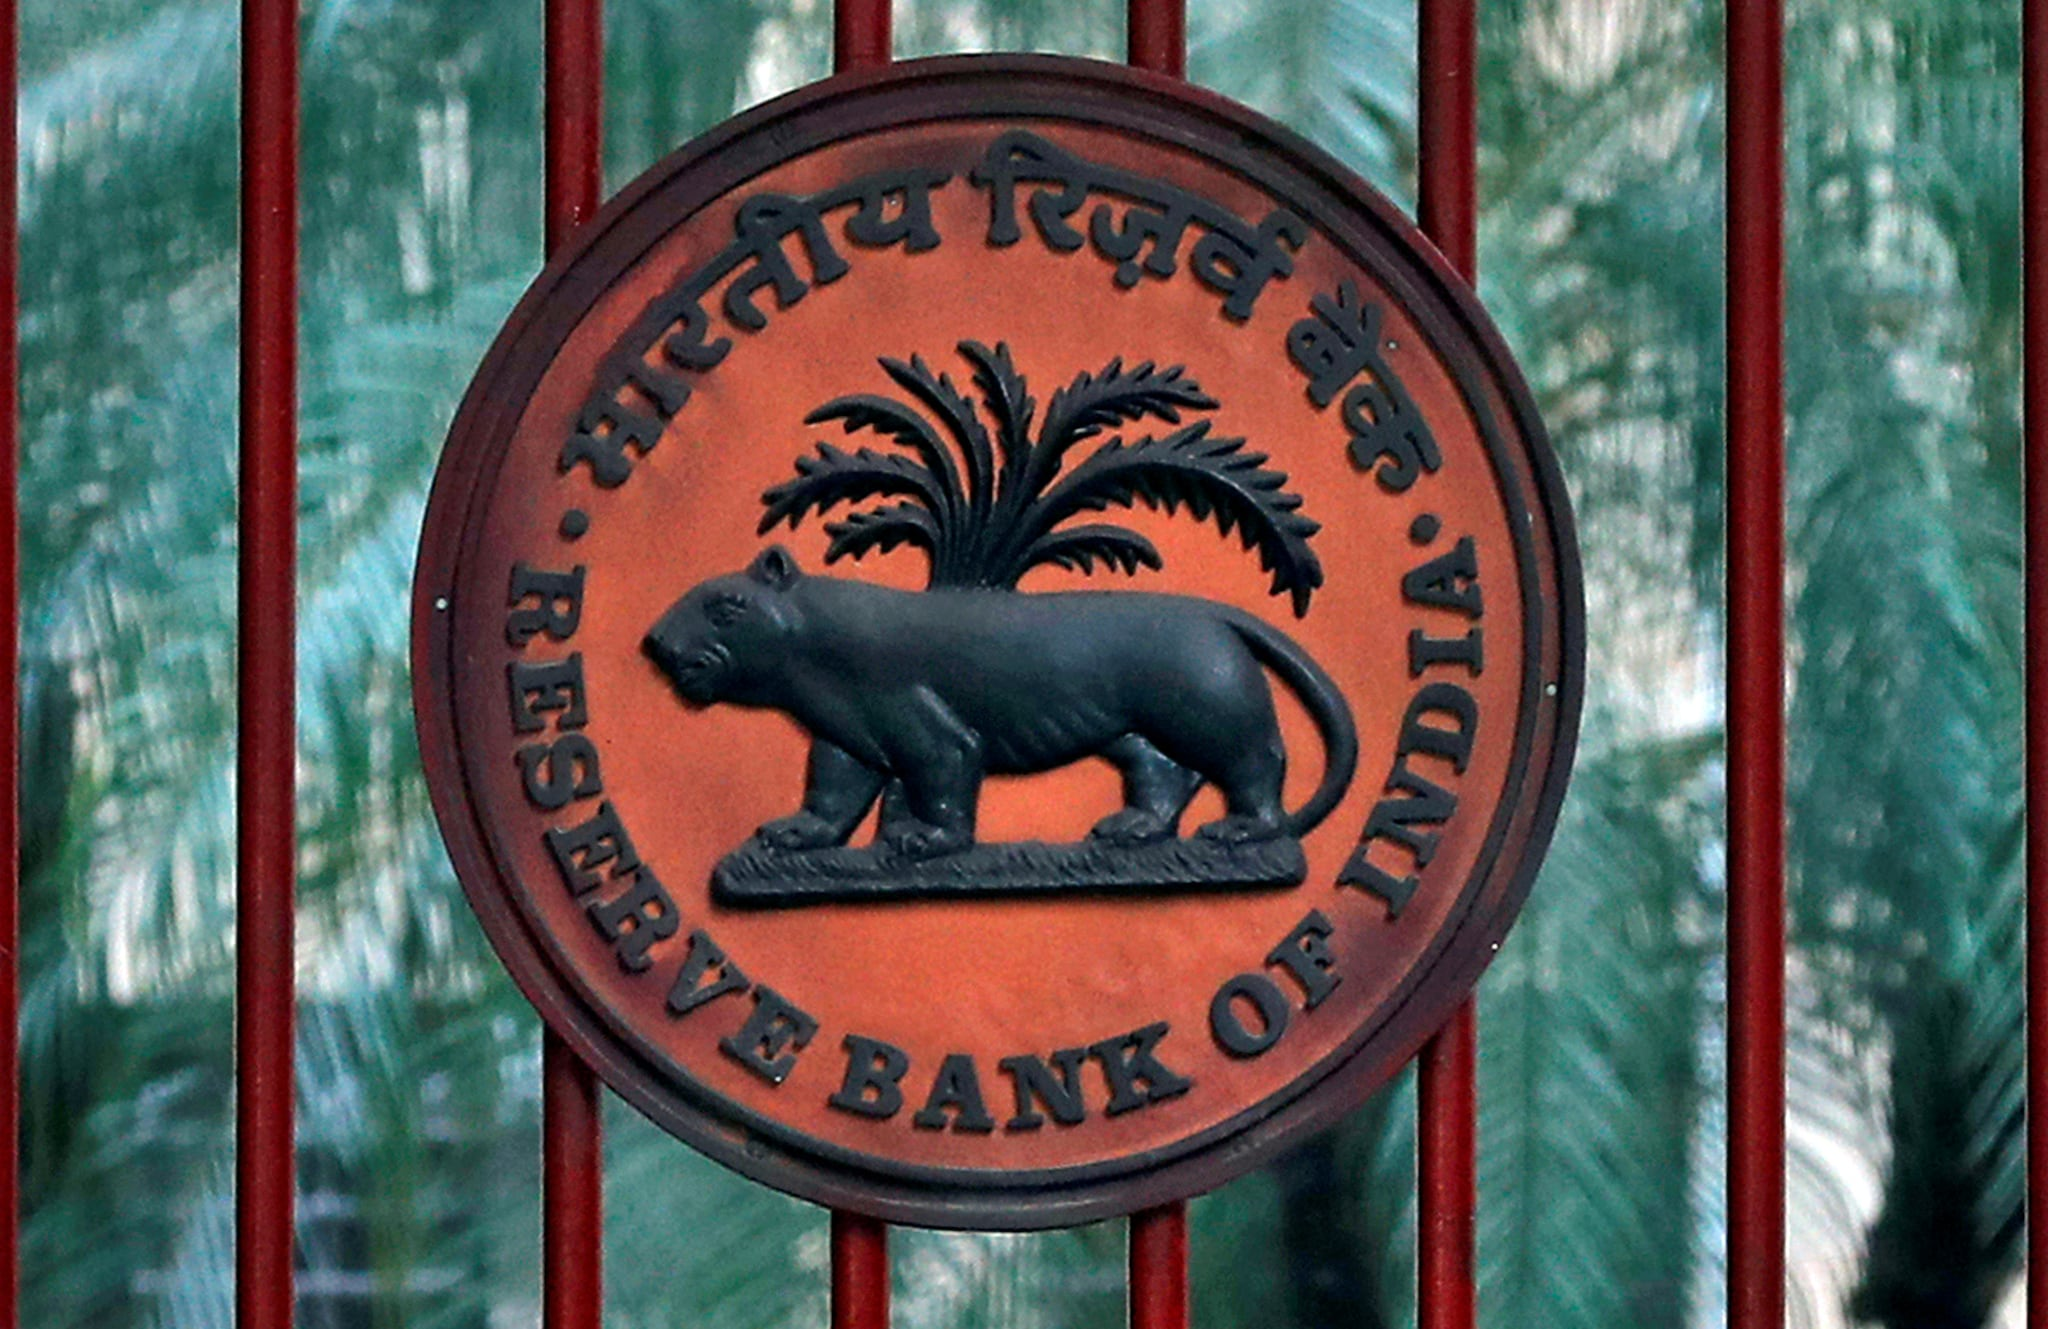 7. RBI On New NPA Norms, Fiscal Consolidation: The Reserve Bank will issue a revised circular on bad loan recognition within the next three-four days, replacing the February 12 circular that was struck down by the Supreme Court. Furthermore, the RBI also said that it expects the government to continue to be